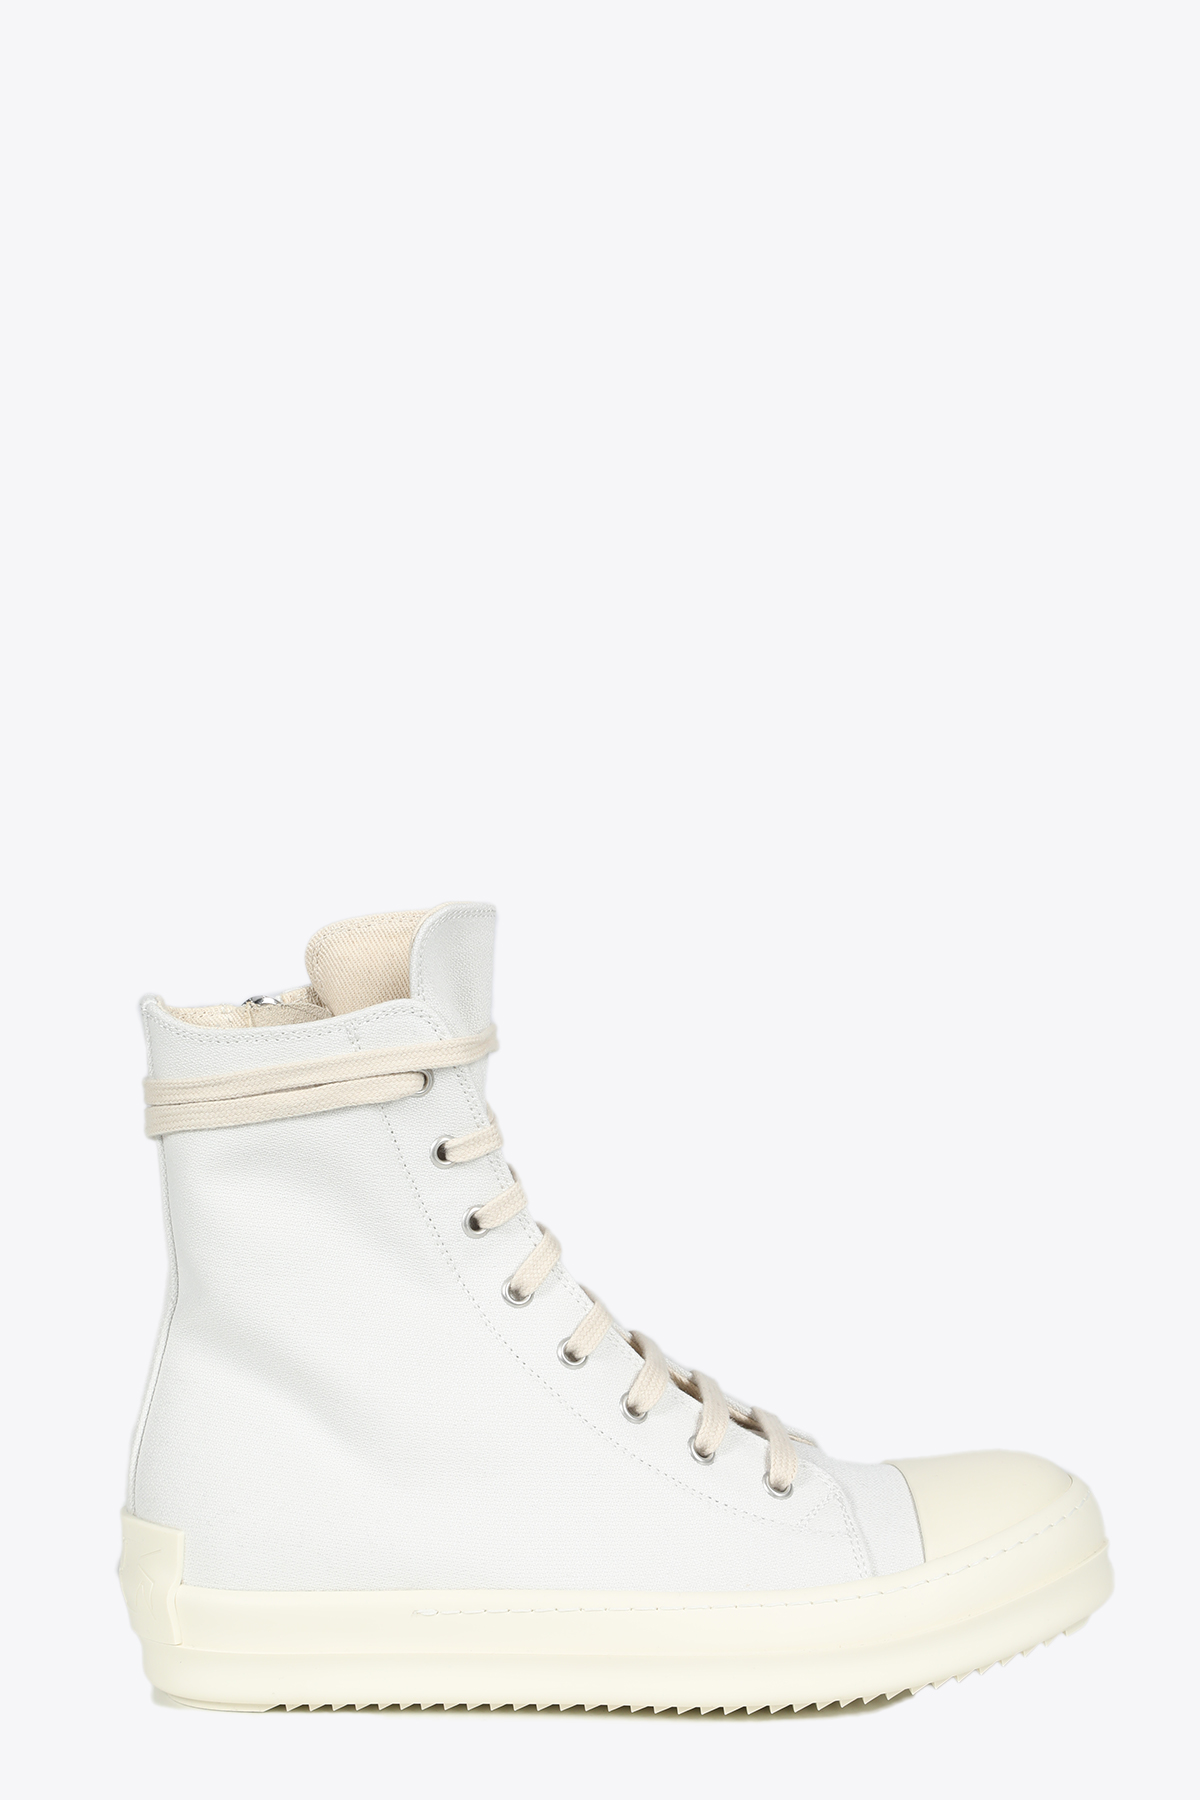 LACE UP HIGH TOP SNEAKERS RICK OWENS-DRKSHDW   10000039   DS21S2800 TNAPH2 SNEAKERS8111